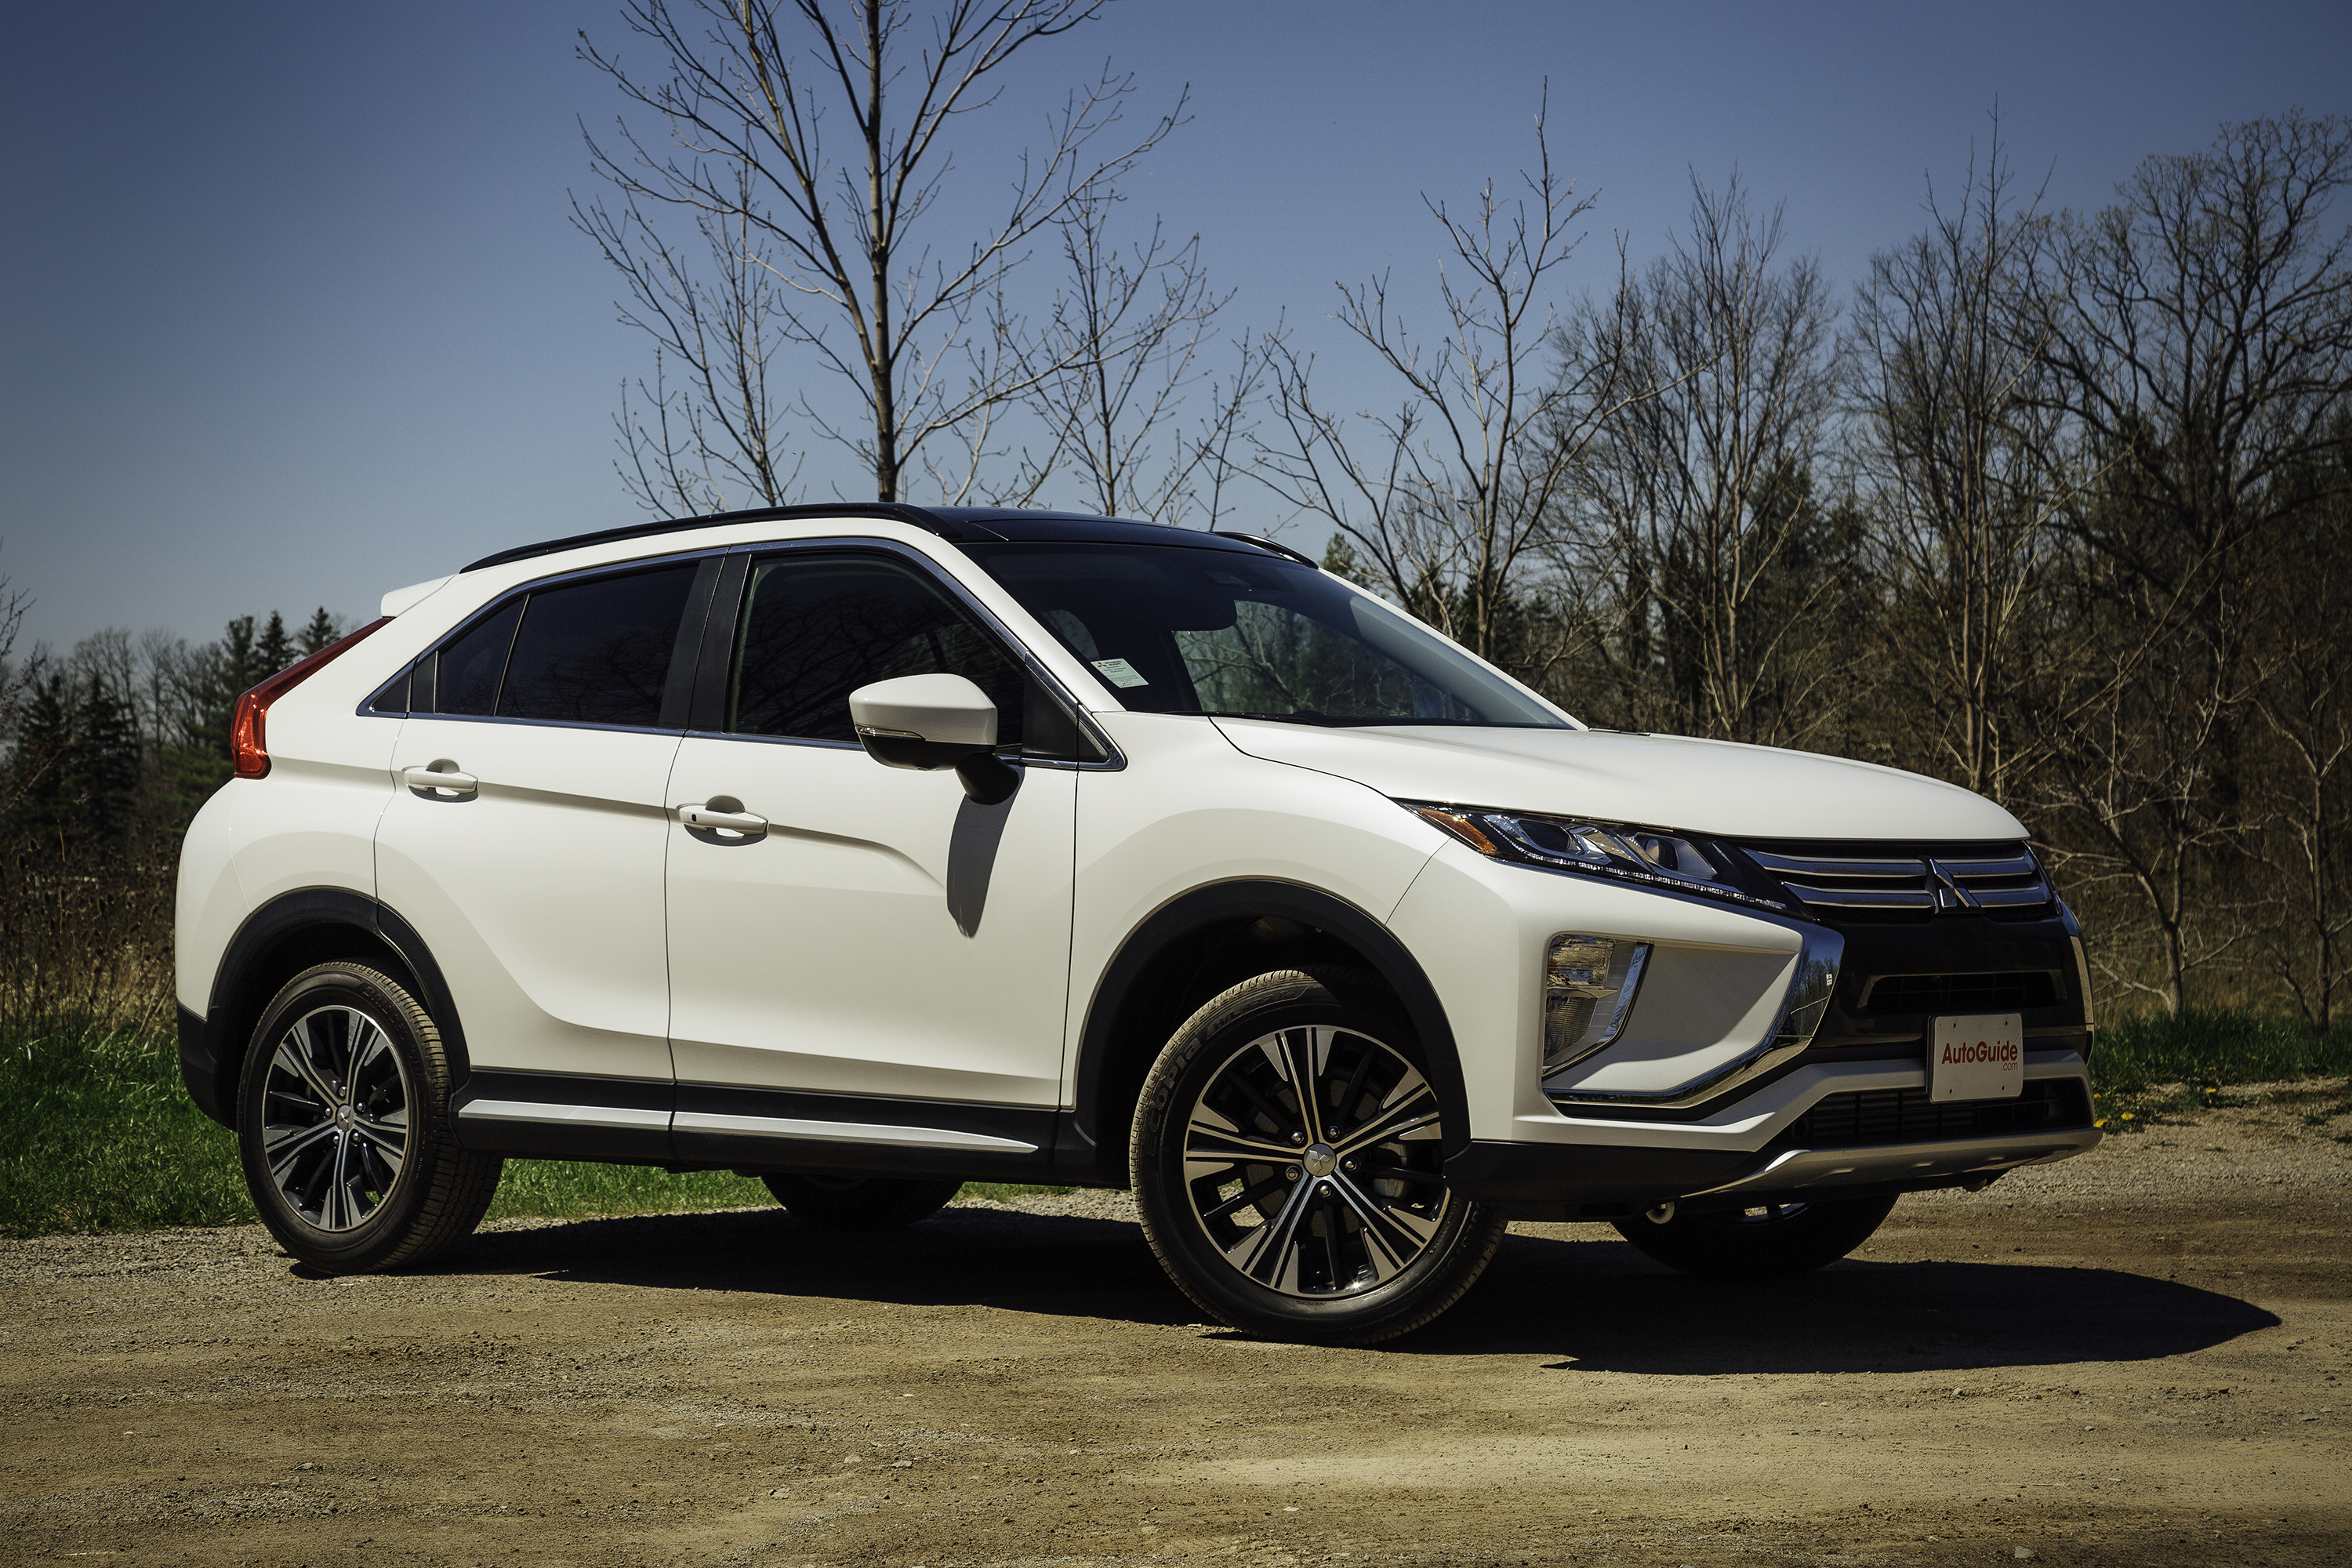 2018 mitsubishi eclipse cross review and video autoguide com rh autoguide com Video of Eclipse Today Eclipse Daylight Video